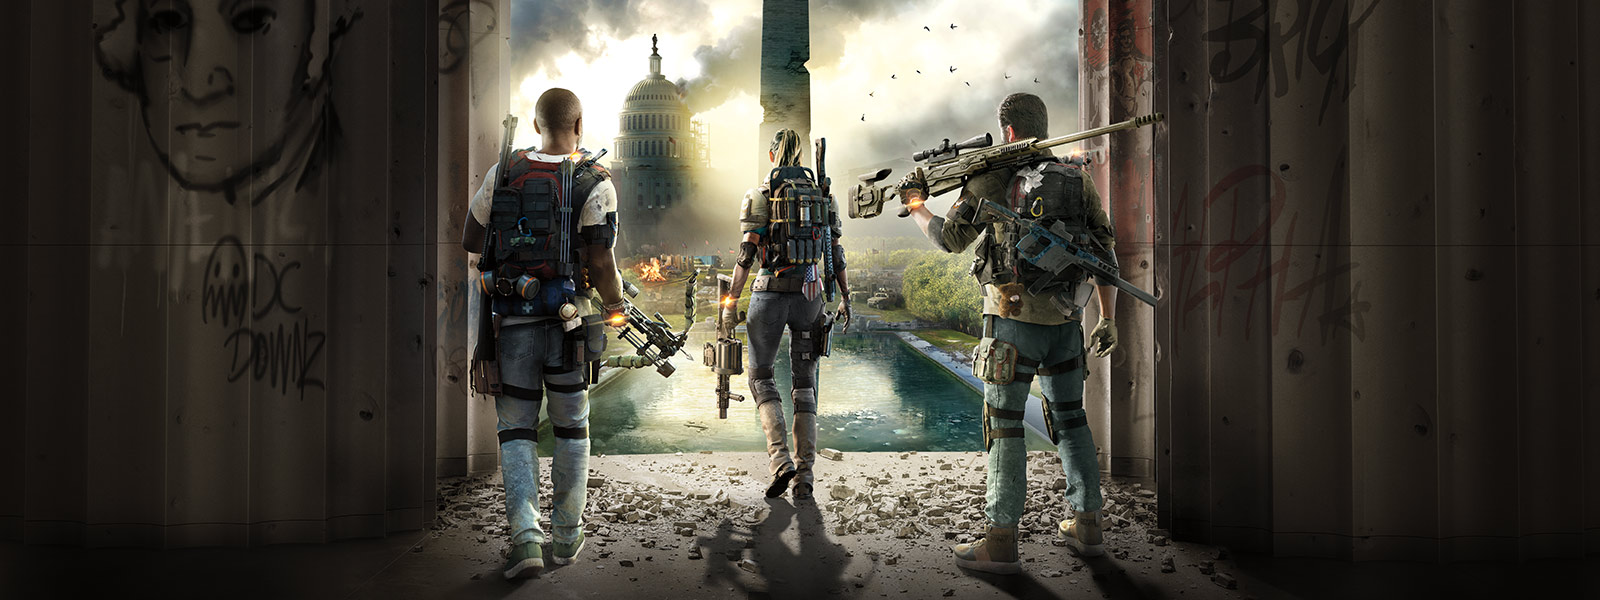 Tom Clancy's The Division 2, Three heavily geared people look over a ravaged Washington D.C.